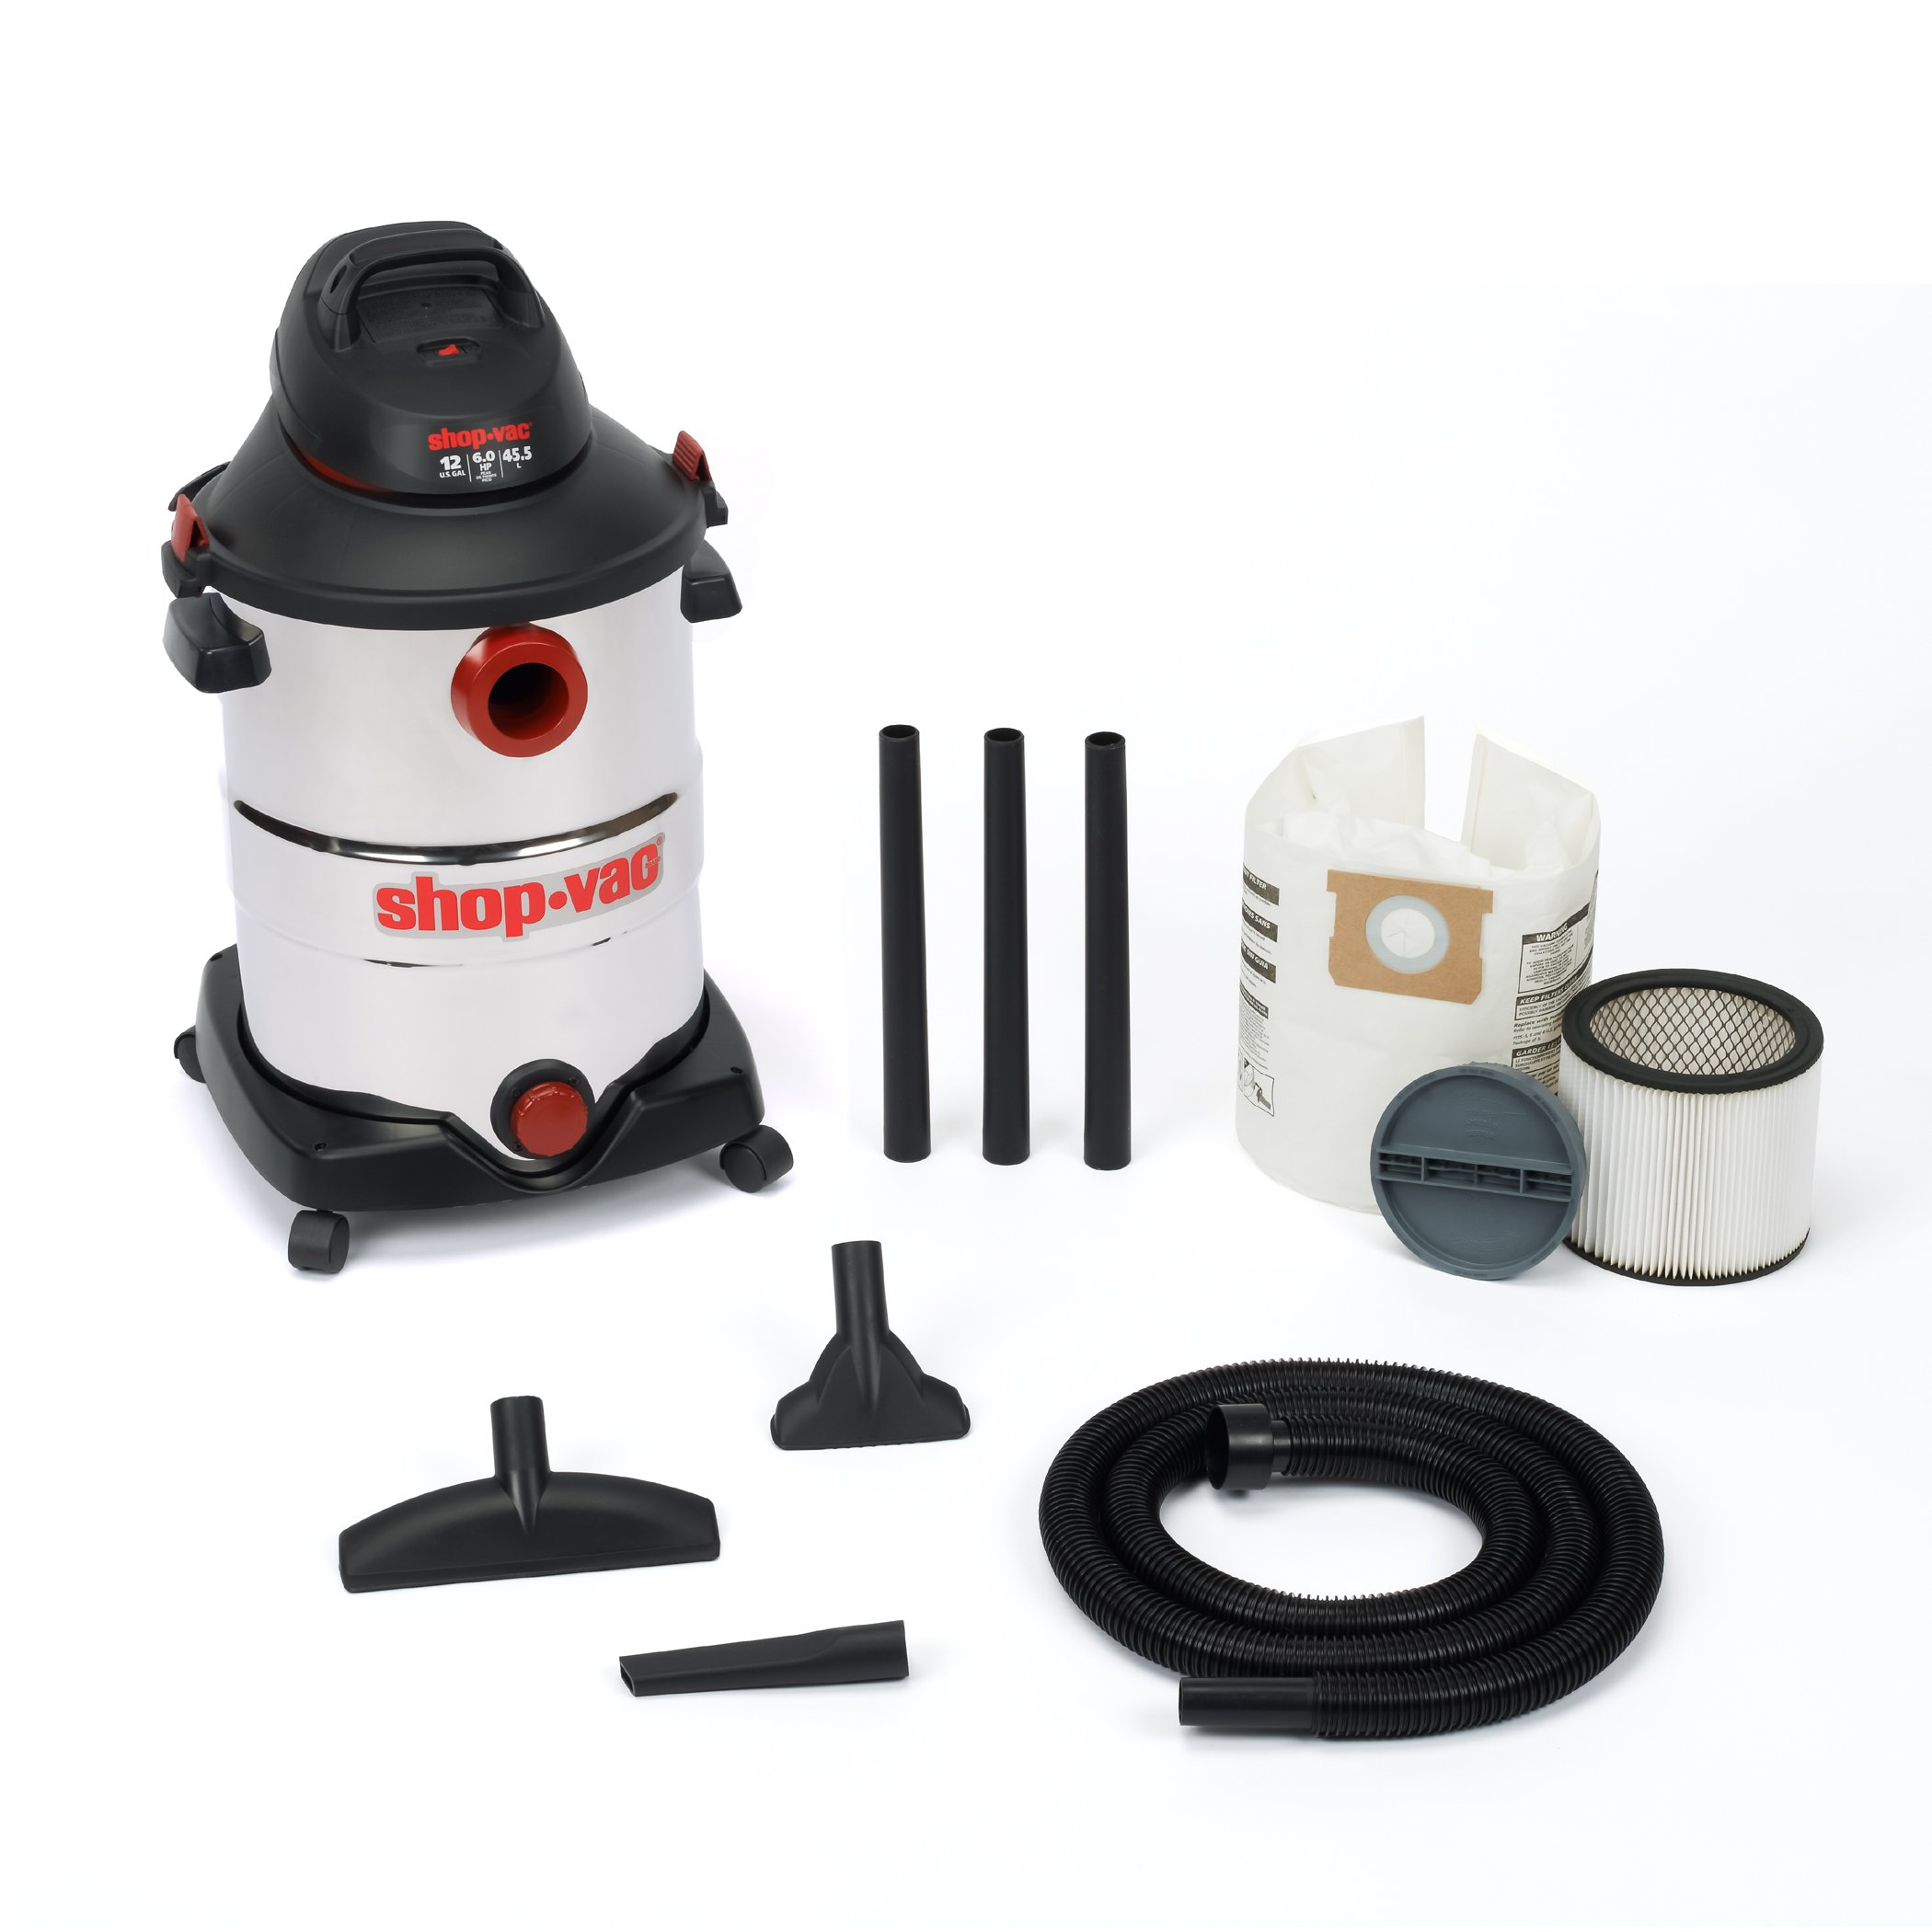 How Does a Shop-Vac Work